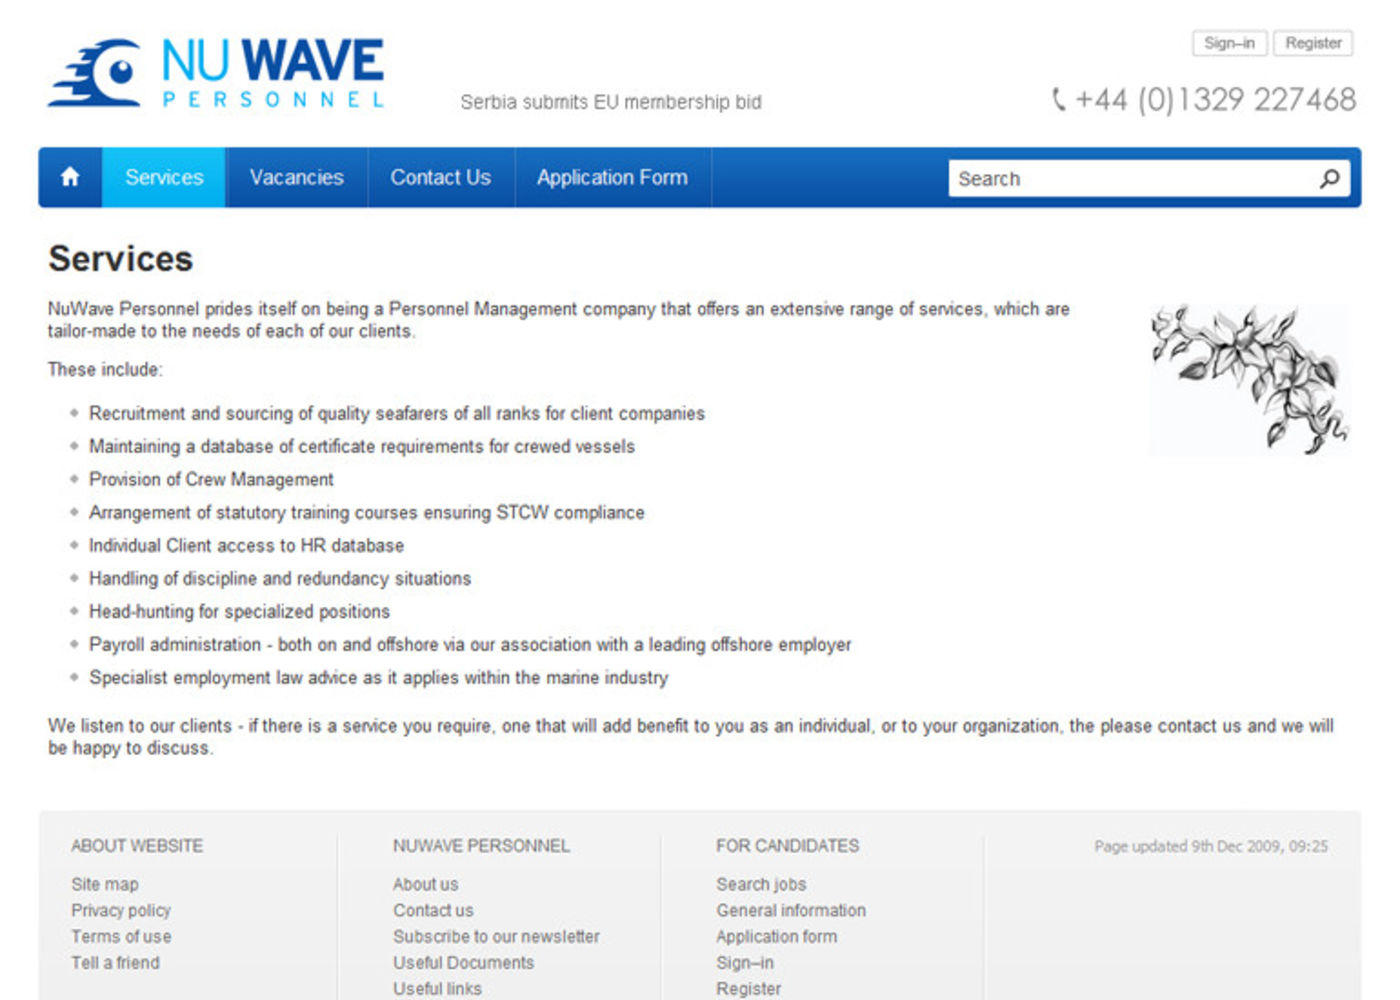 NuWave Personnel Regular page